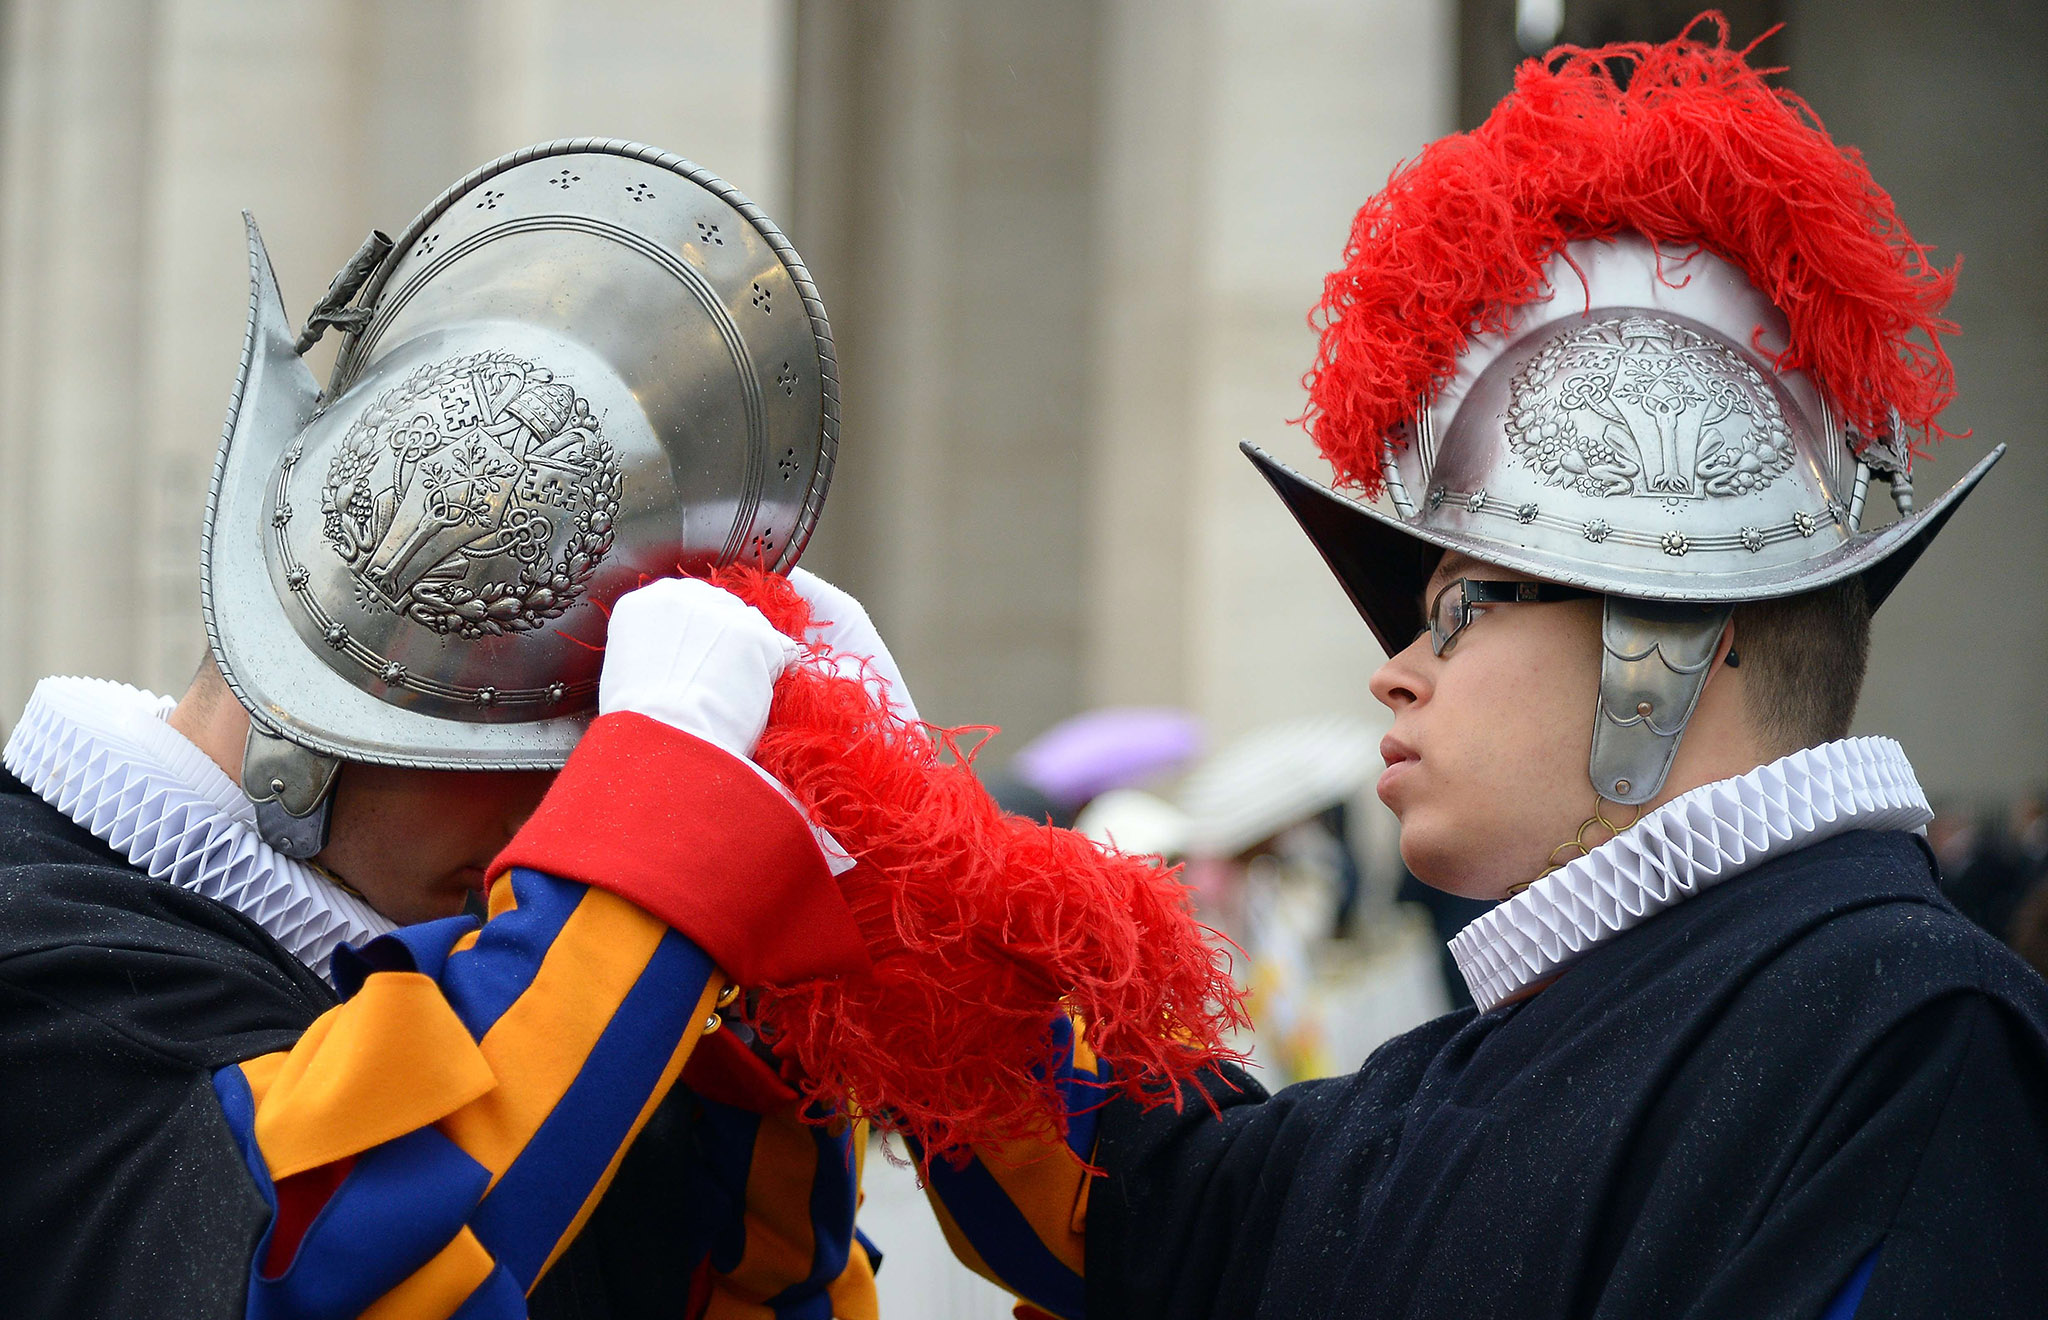 A Swiss guard helps a collegue to adjust his helmet at St Peter's square before the start of the Jubilee Year of Mercy in the Vatican.